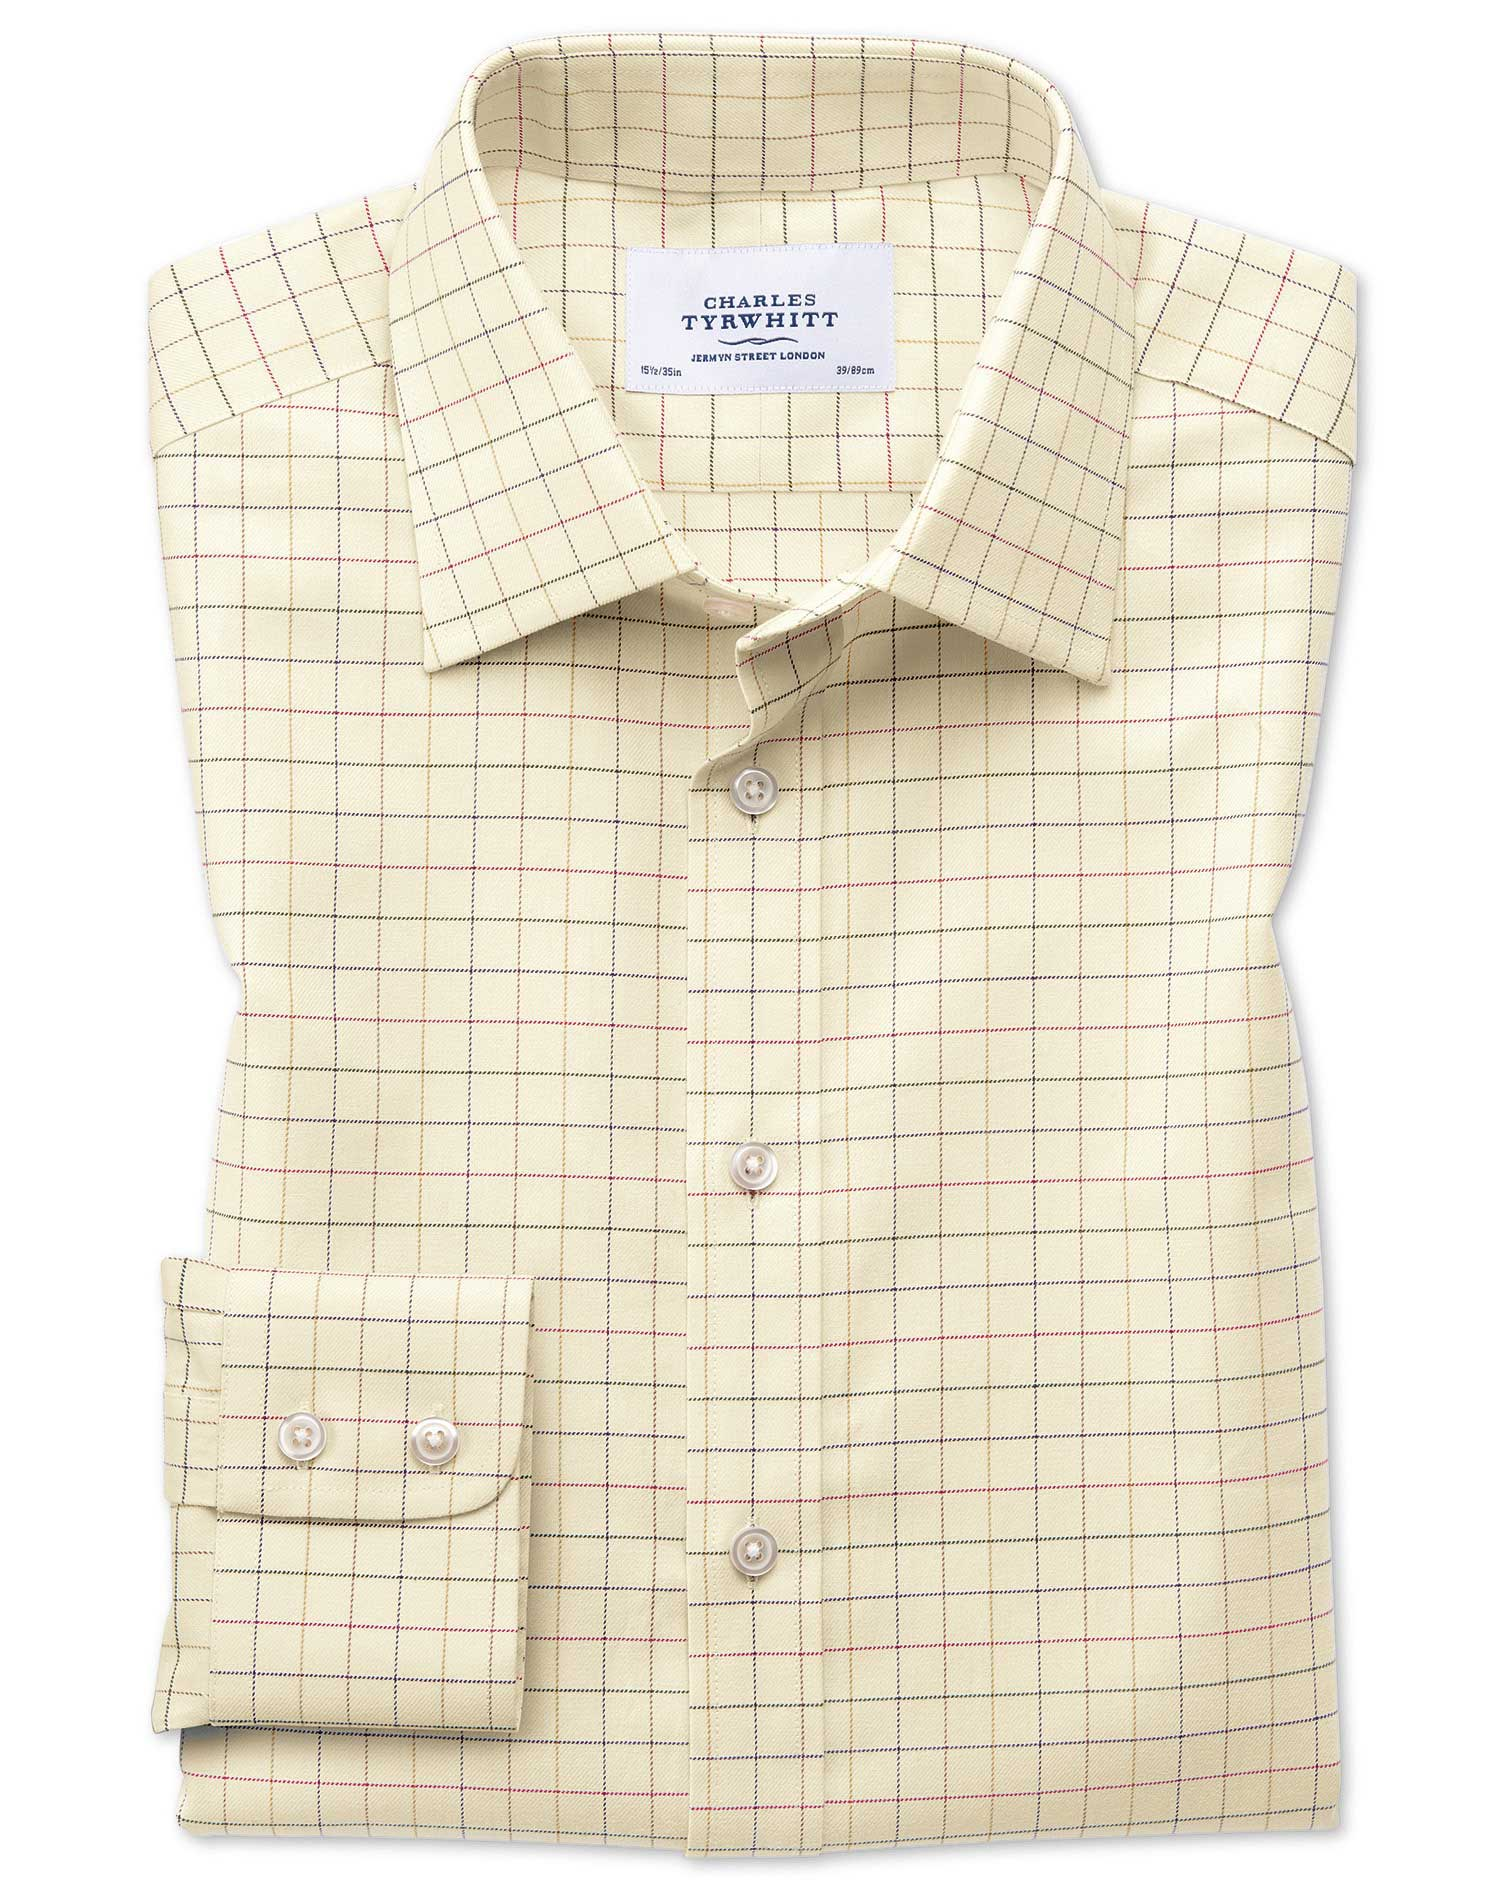 Slim Fit Country Check Multi Cotton Formal Shirt Single Cuff Size 15.5/33 by Charles Tyrwhitt